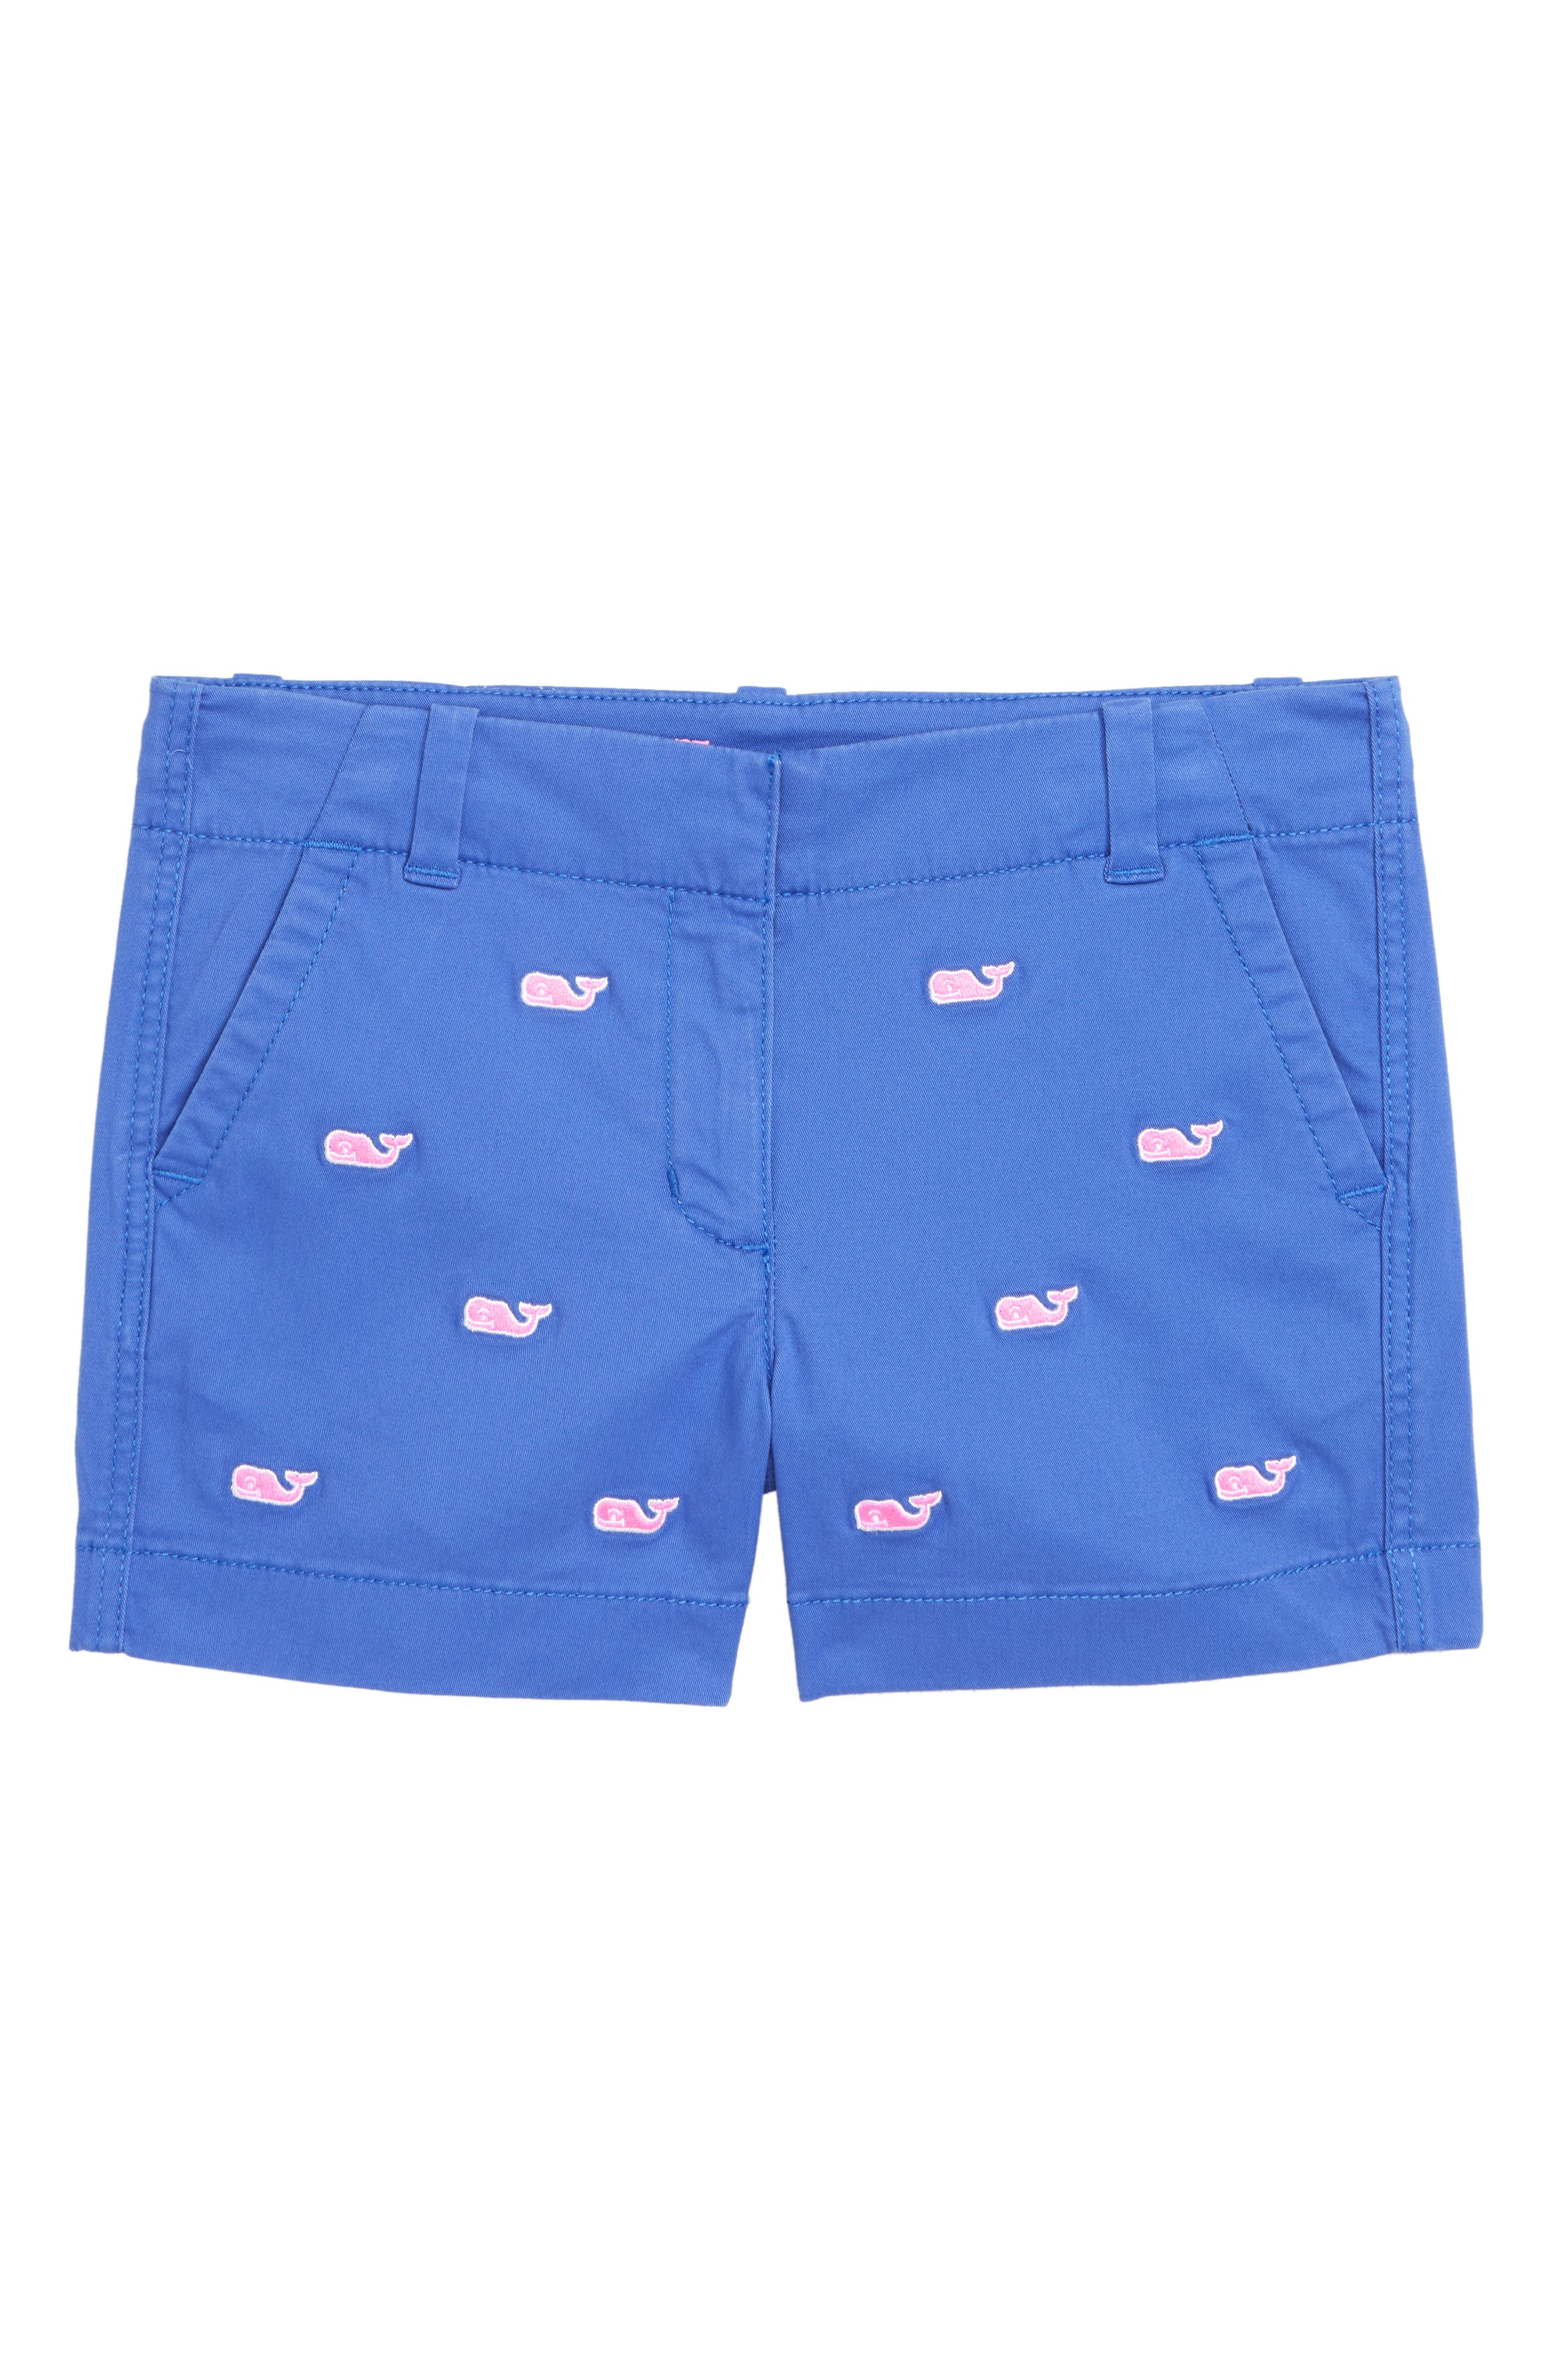 Whale Embroidered Chino Shorts,                         Main,                         color, MARLIN